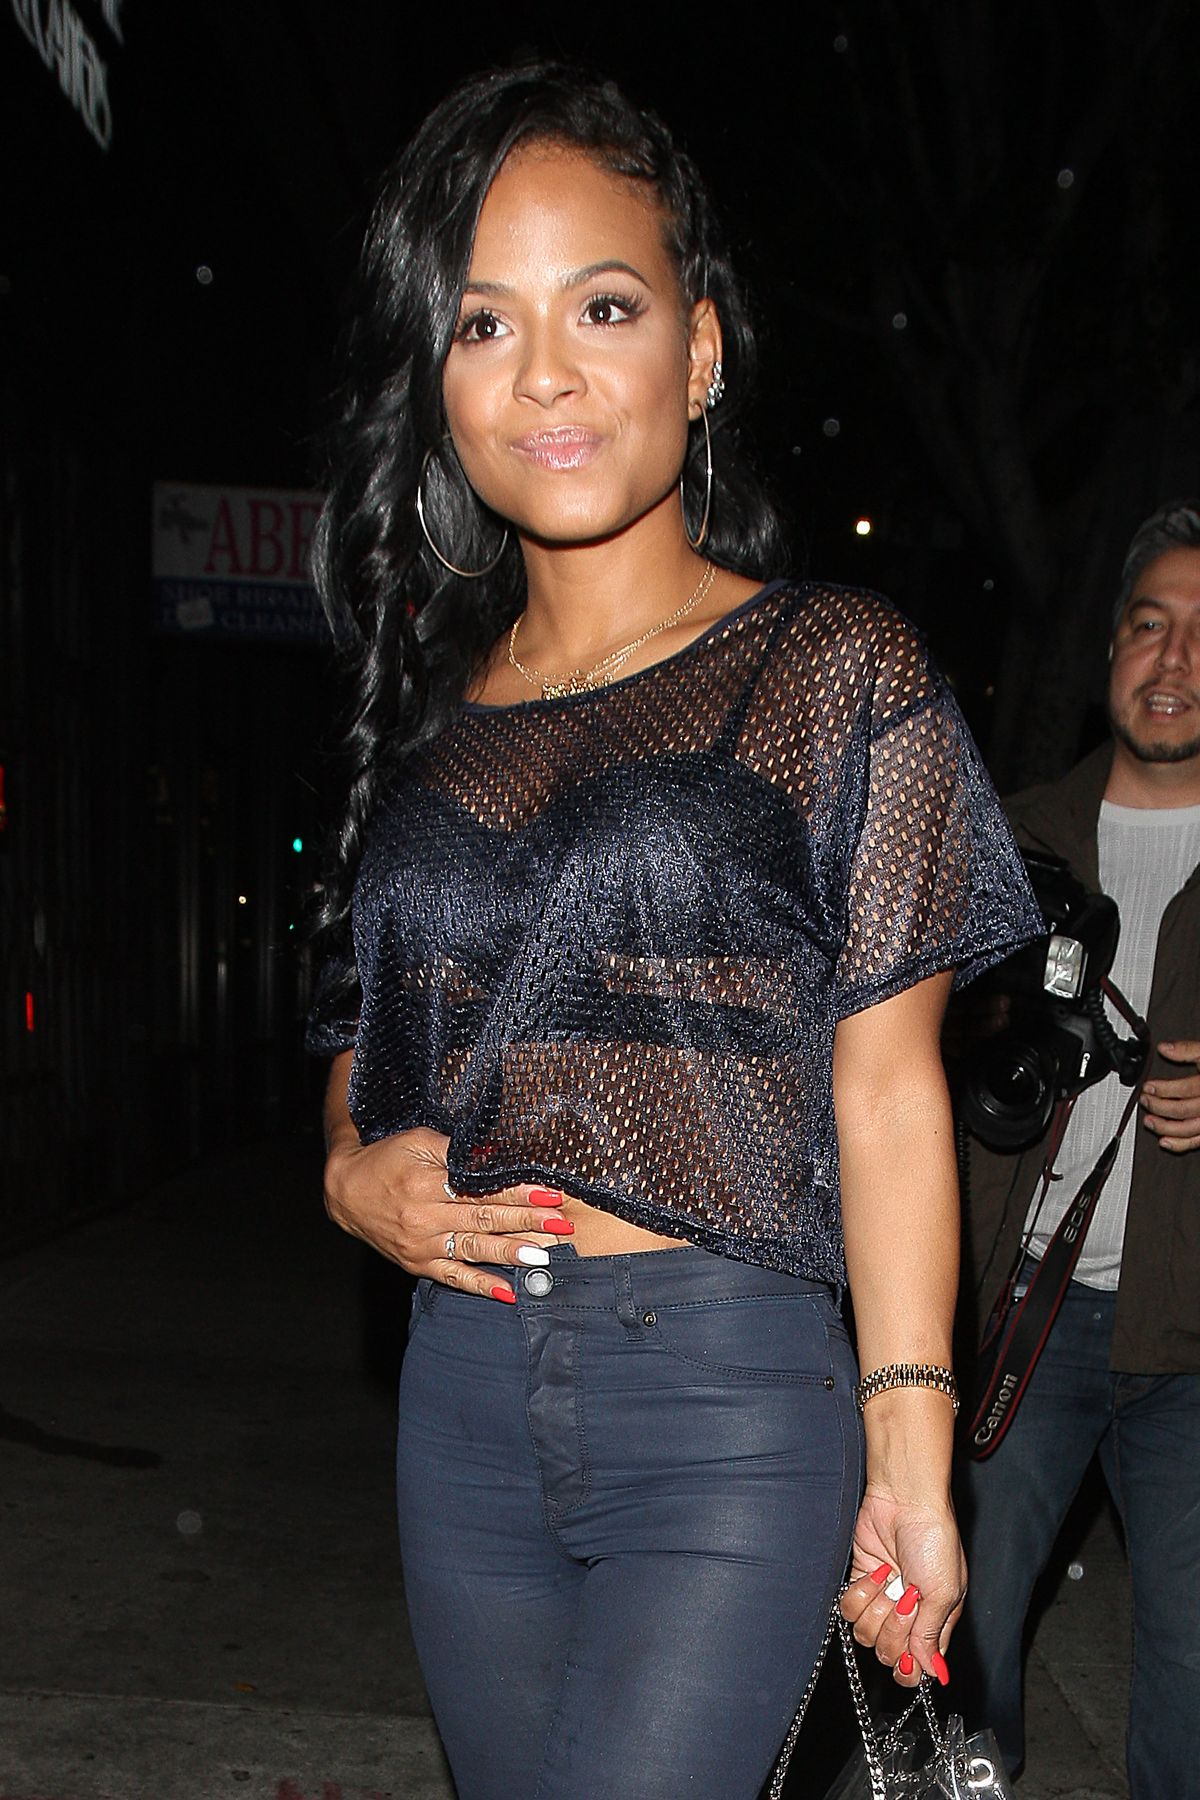 CHRISTINA MILIAN Arrives at Warwick Nightclub in Hollywood 06/11/2015